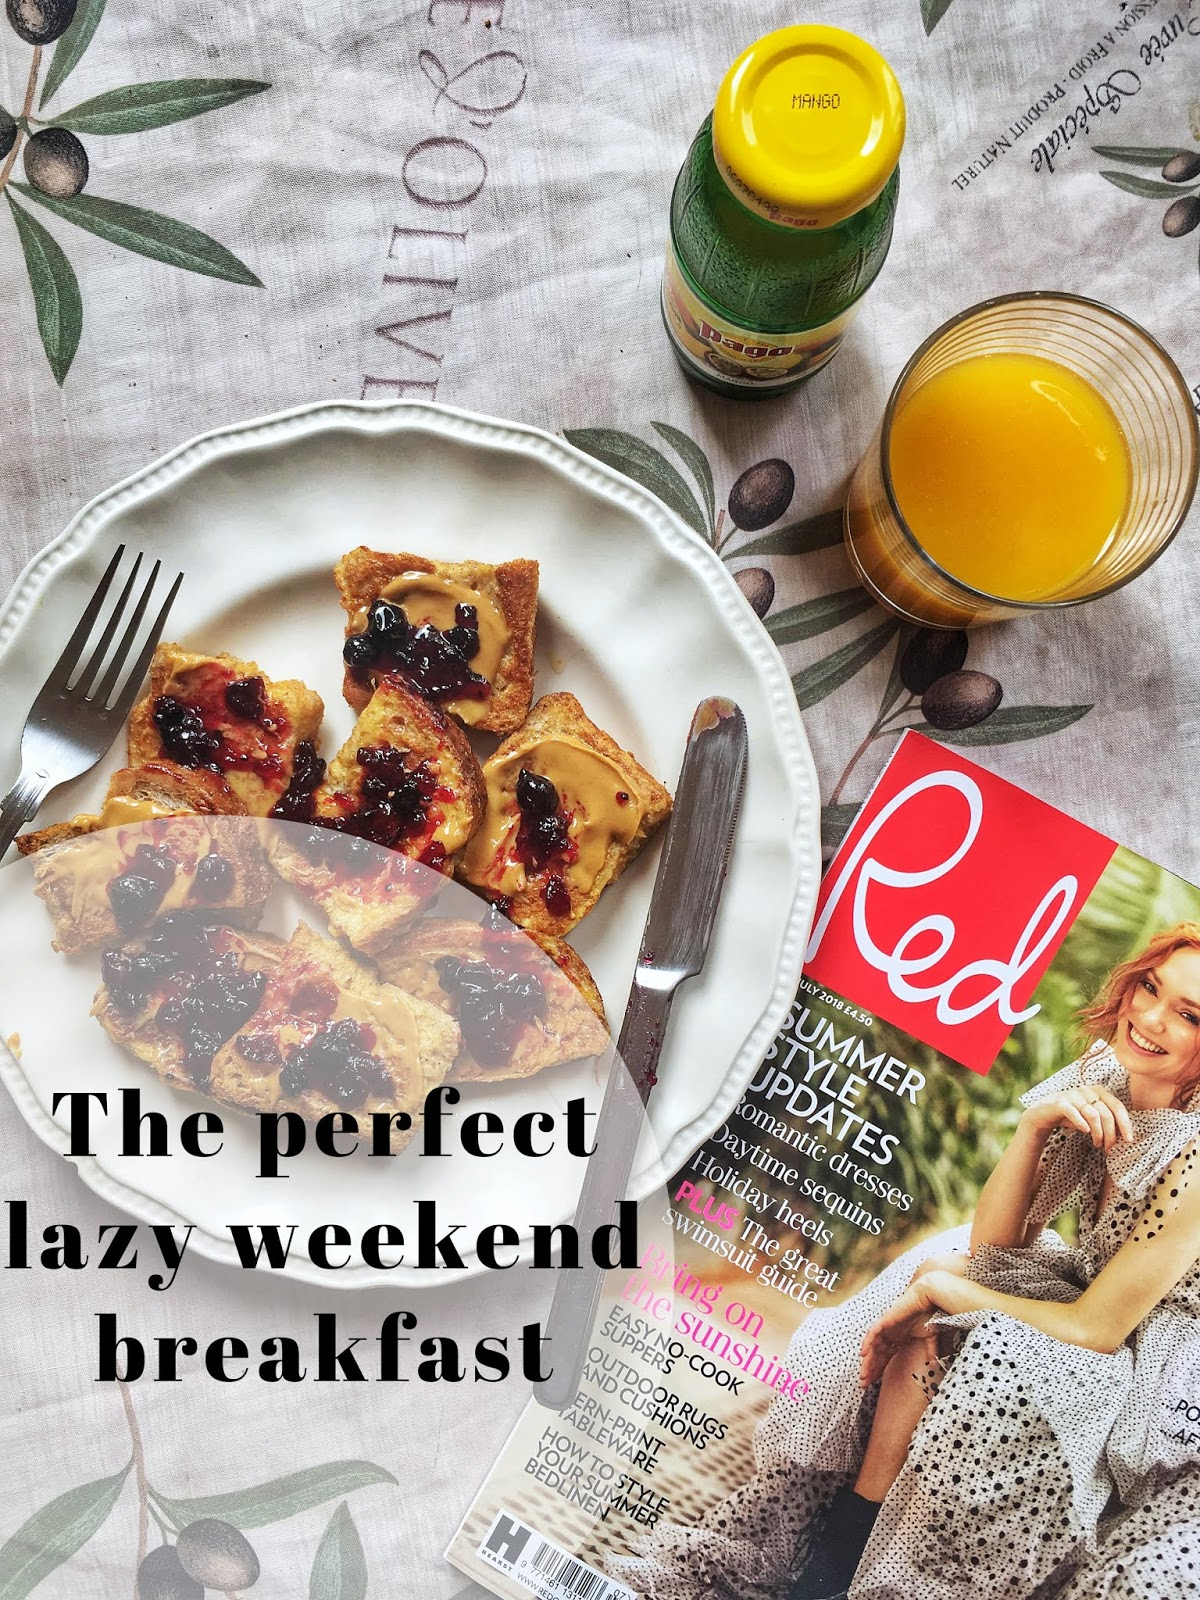 The Perfect Lazy Weekend Breakfast with Pago Premium Juices